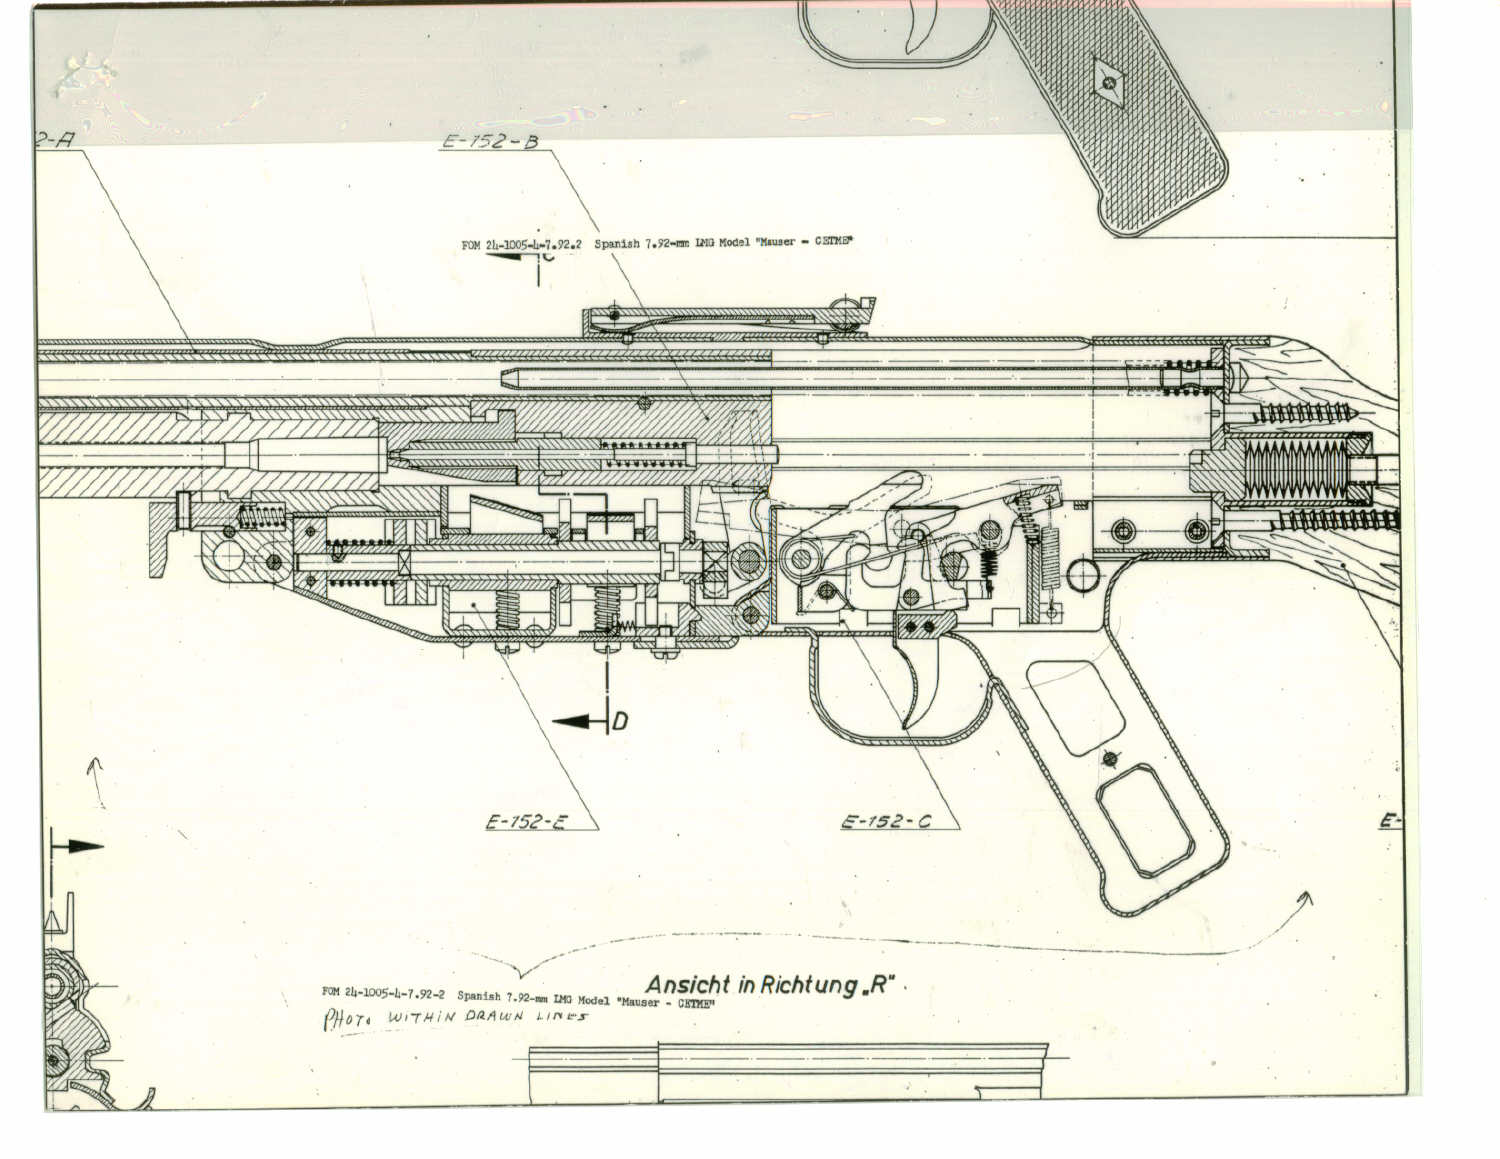 hight resolution of records of the springfield armory records of the research and engineering division spanish 7 62mm light machine gun model mauser cetme